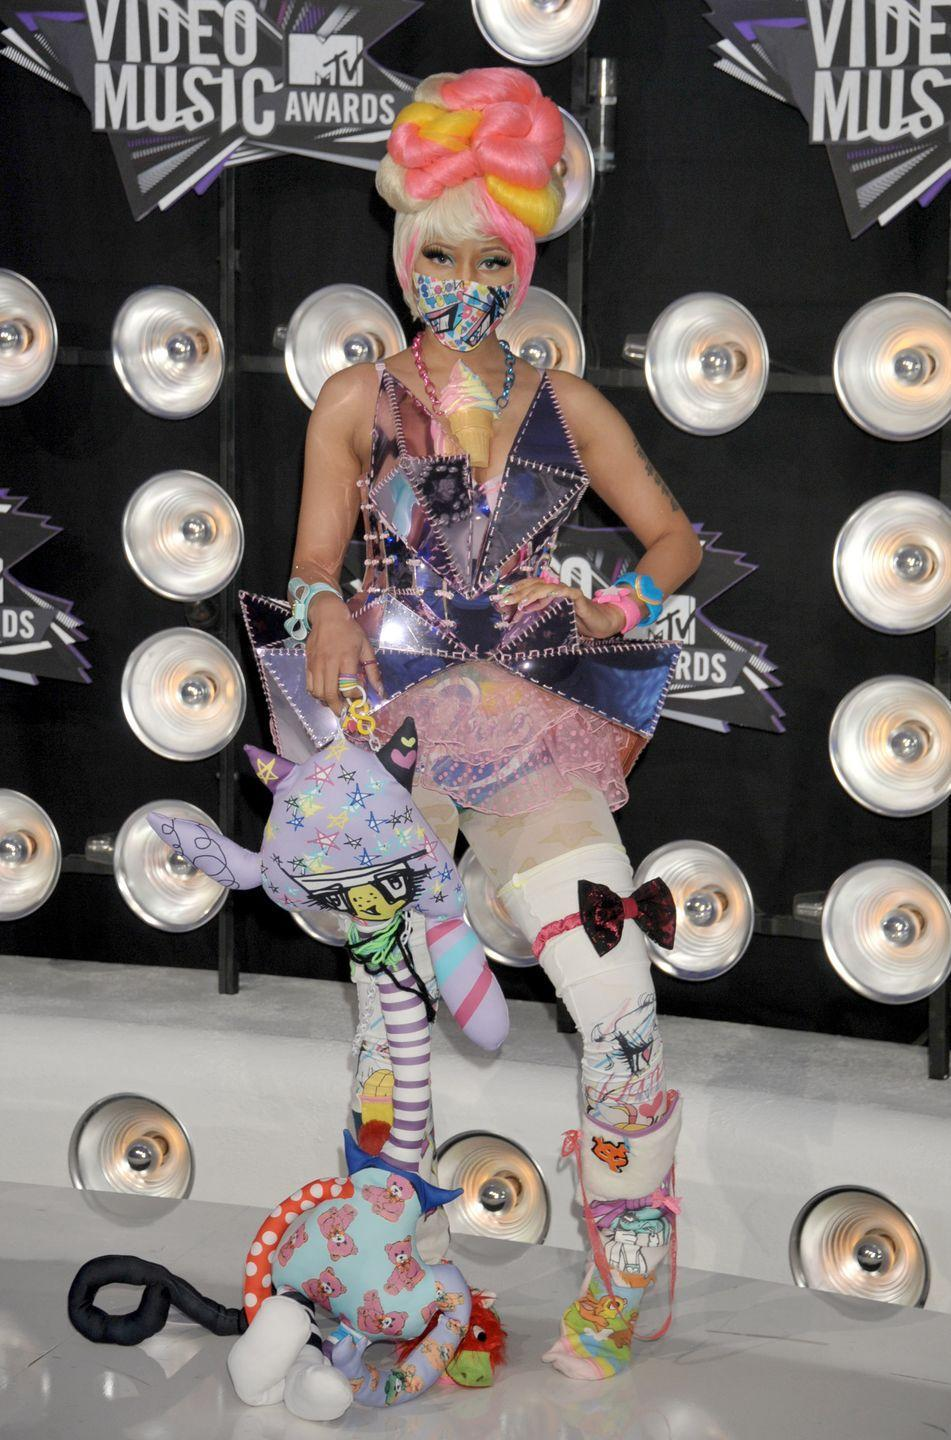 <p>Nicki Minaj's Harajuku-inspired look was hard not to notice on the carpet in 2011. With bright colors, sharp edges, and lots of different materials, there's not much she <em>didn't</em> add to this outfit. </p>